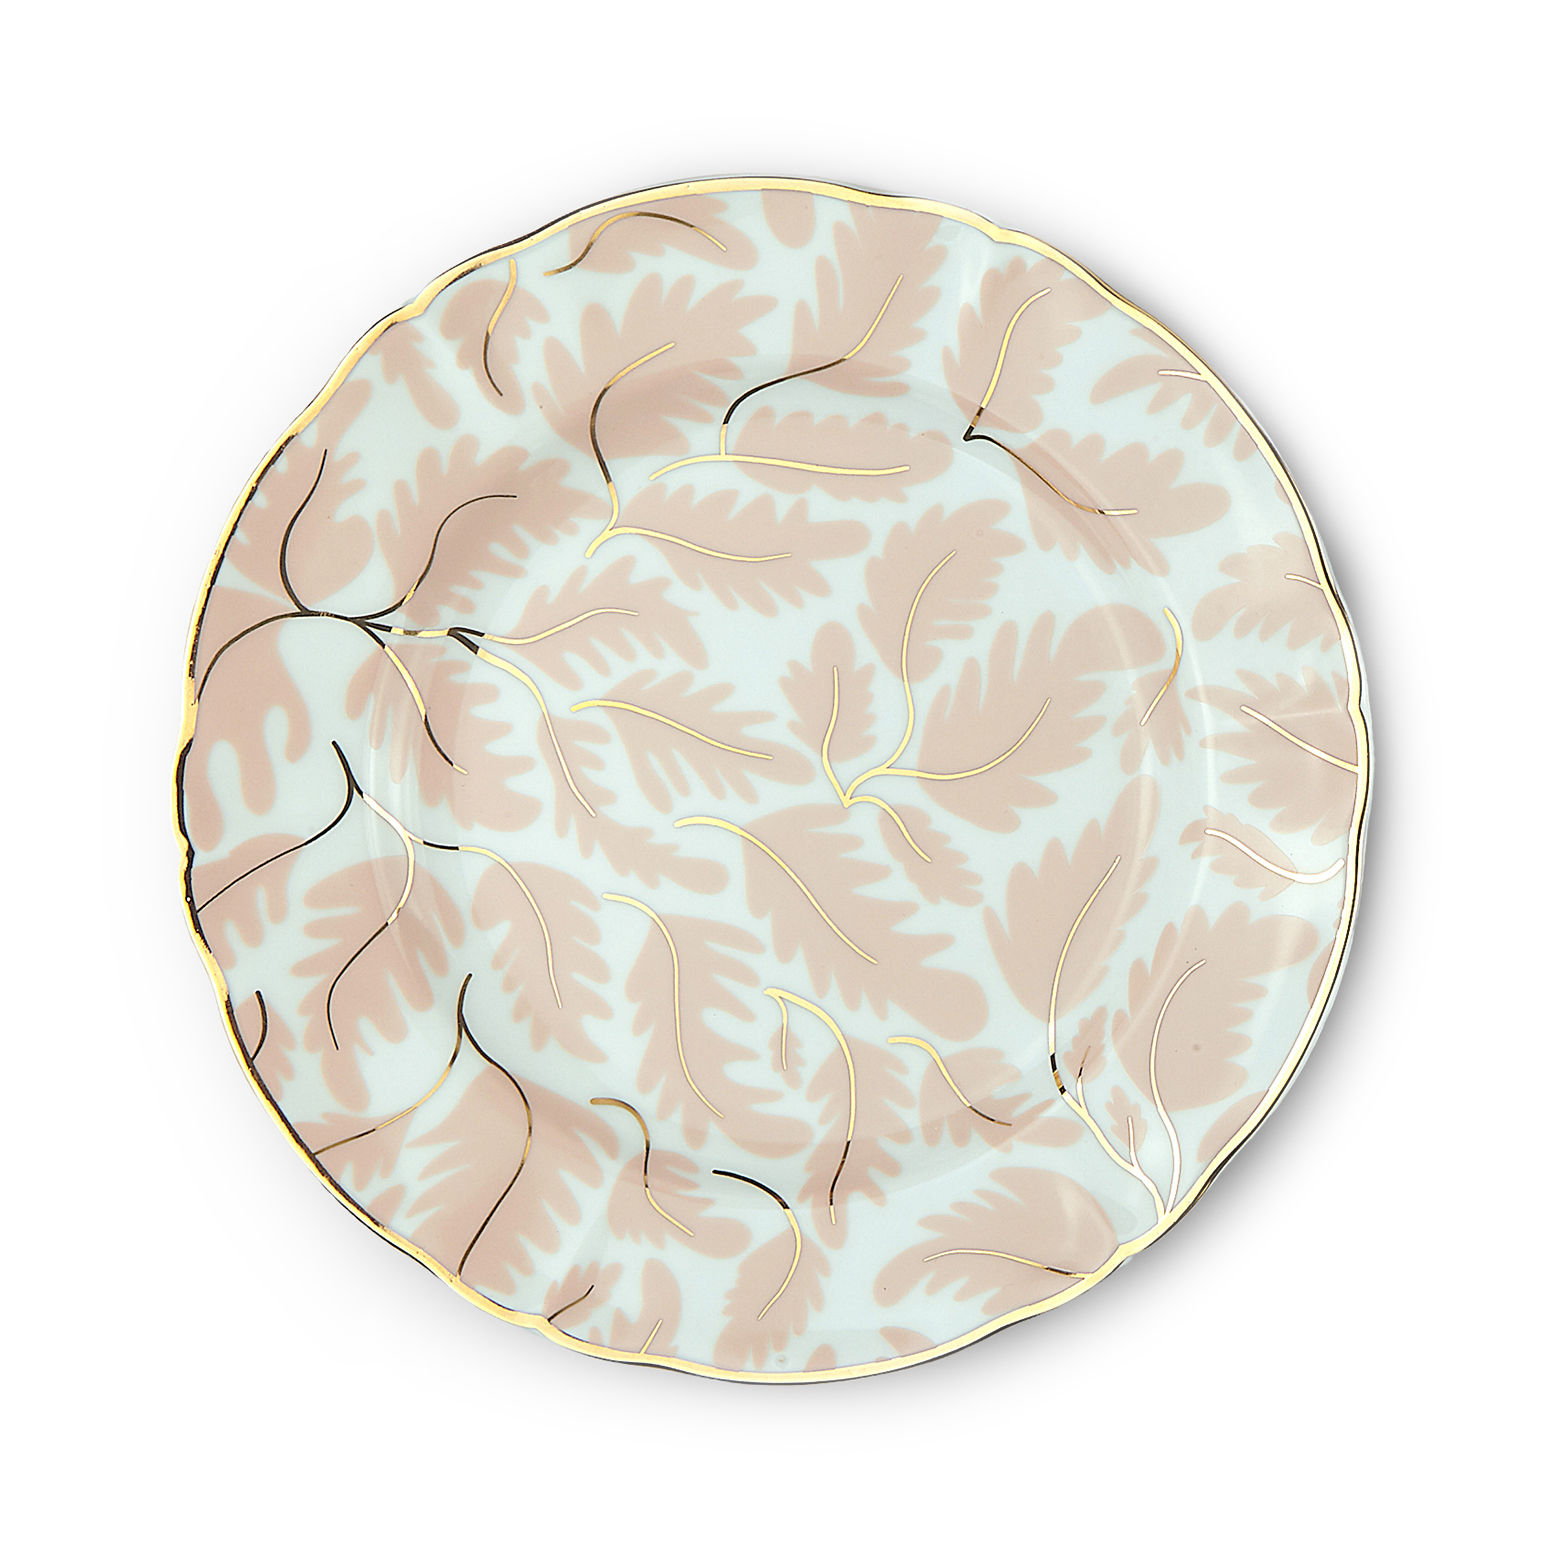 Tableware - Plates - Selva Dessert plate - / Ø 20.5 cm by Bitossi Home - Floral - China